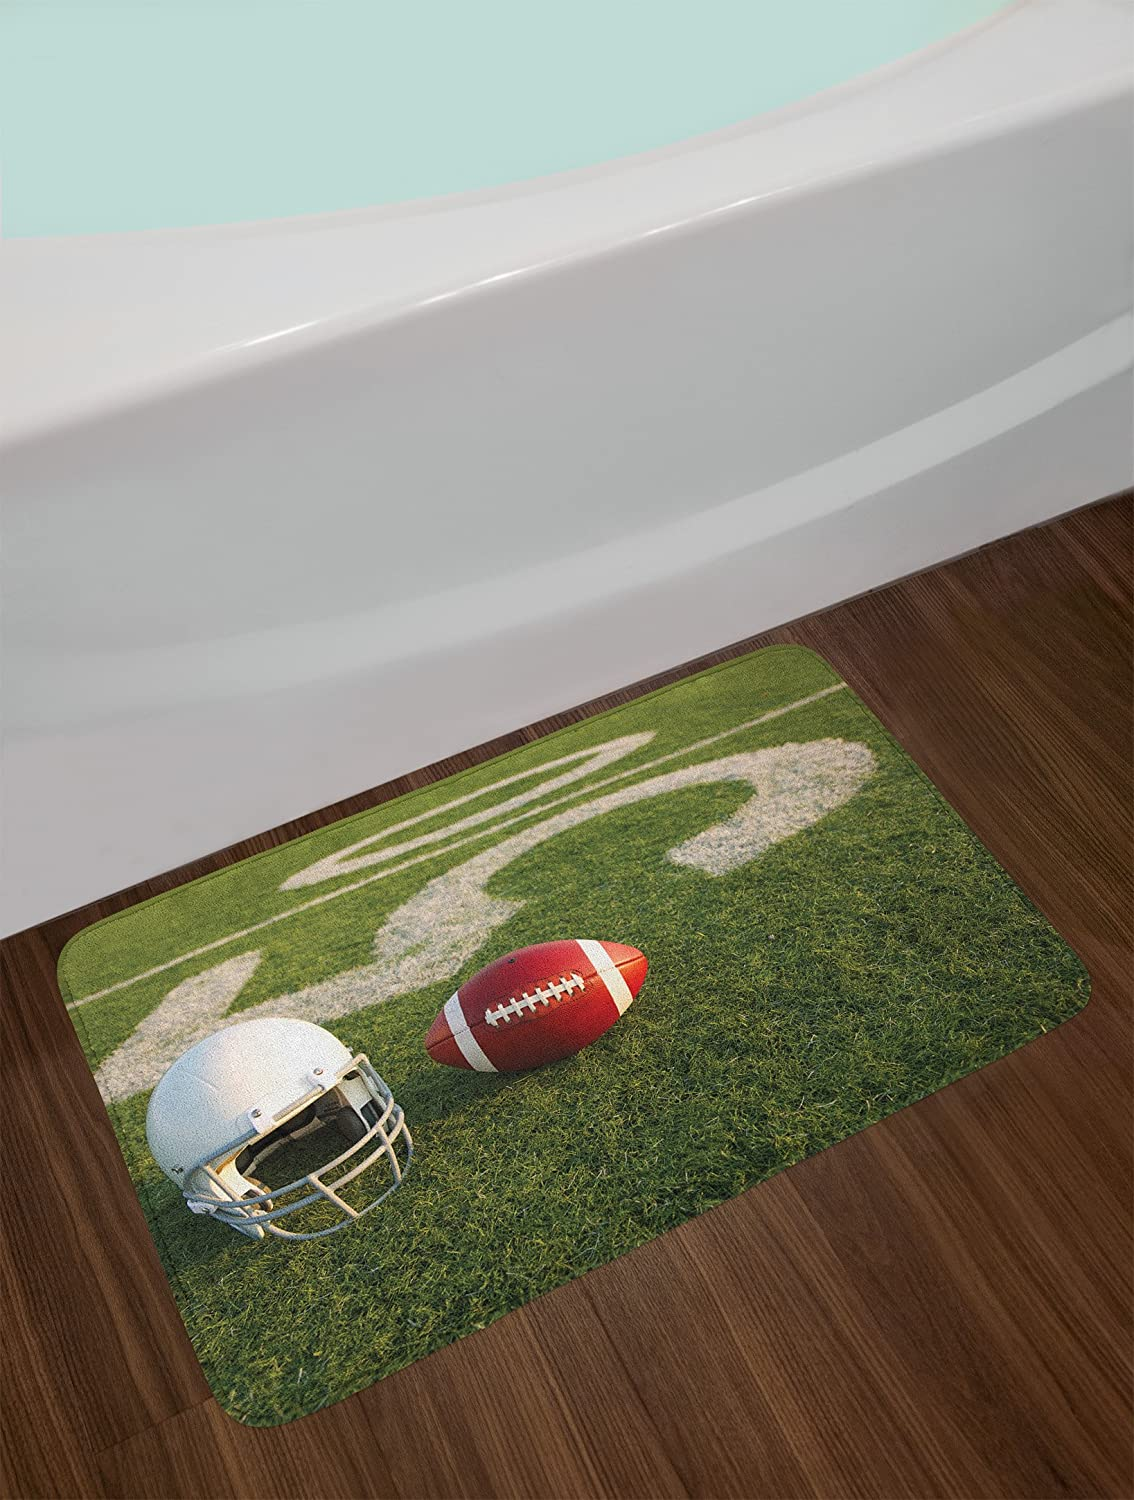 Plush Bathroom Decor Mat with Non Slip Backing Green Red White 29.5 W X 17.5 W Inches Lunarable Sports Bath Mat American Football and Helmet on The Green Grass Field with The Fifty Yard Line